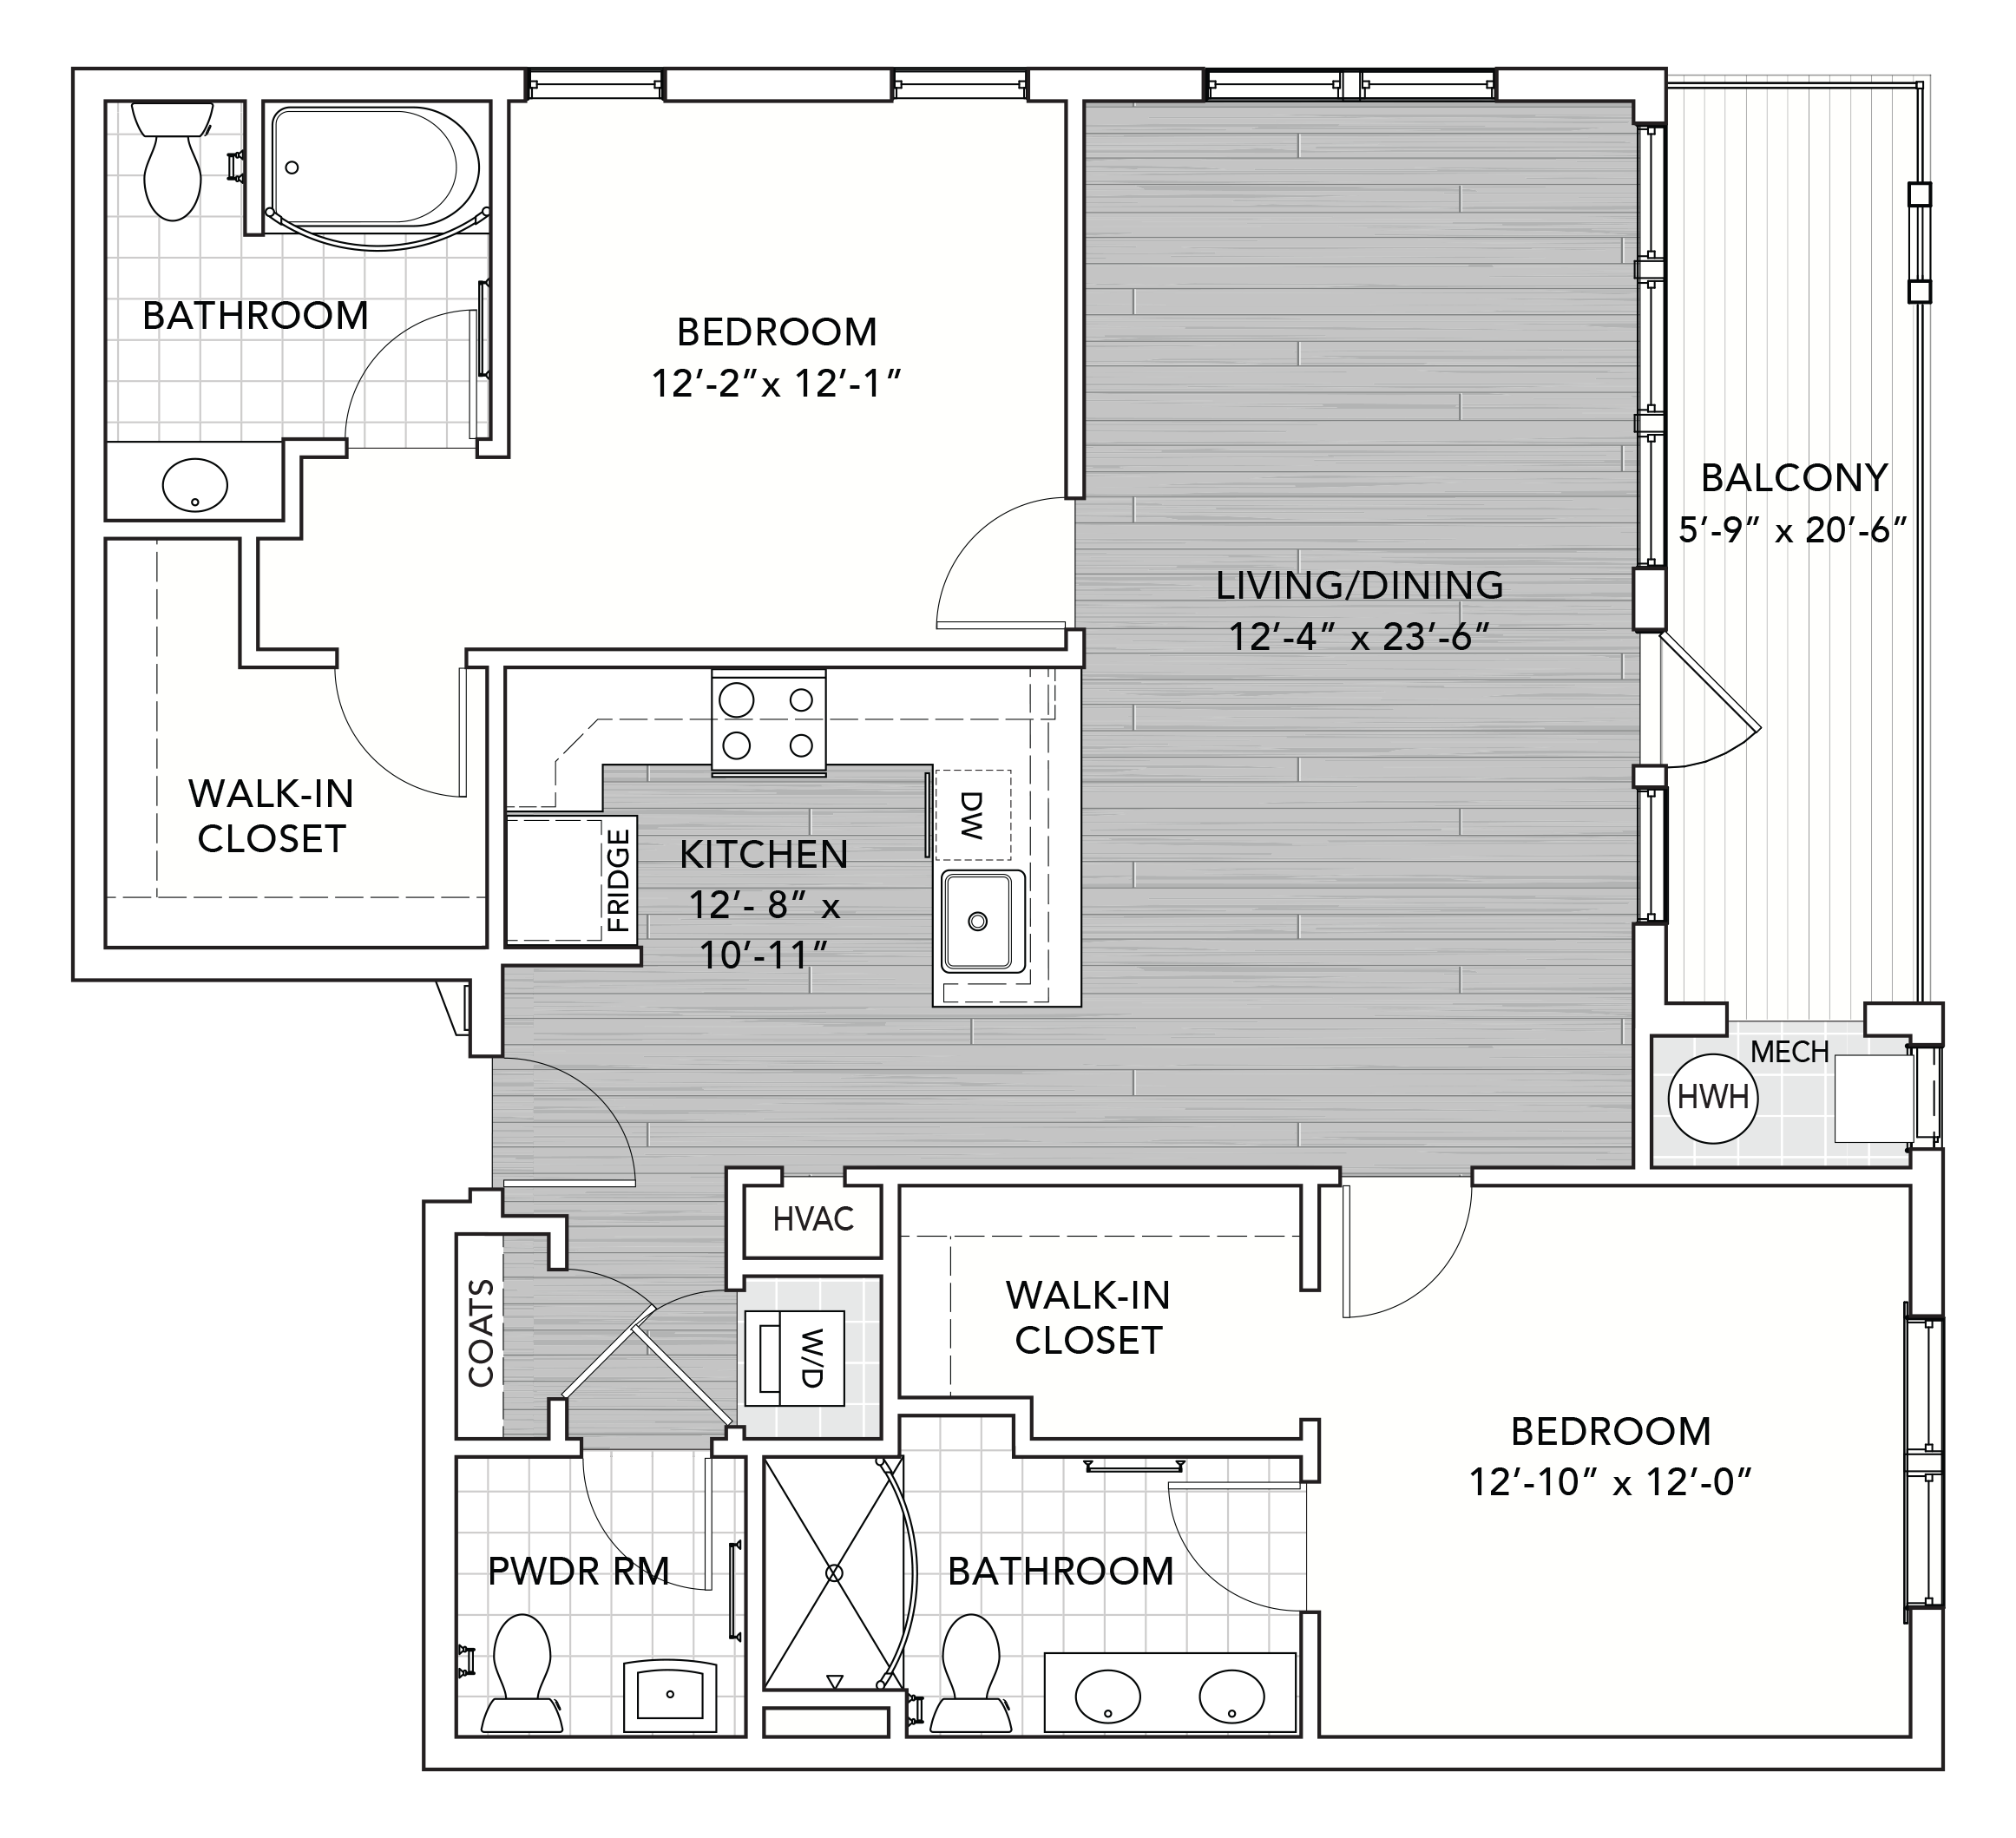 P0655013 parksquare b8 1257 2 floorplan